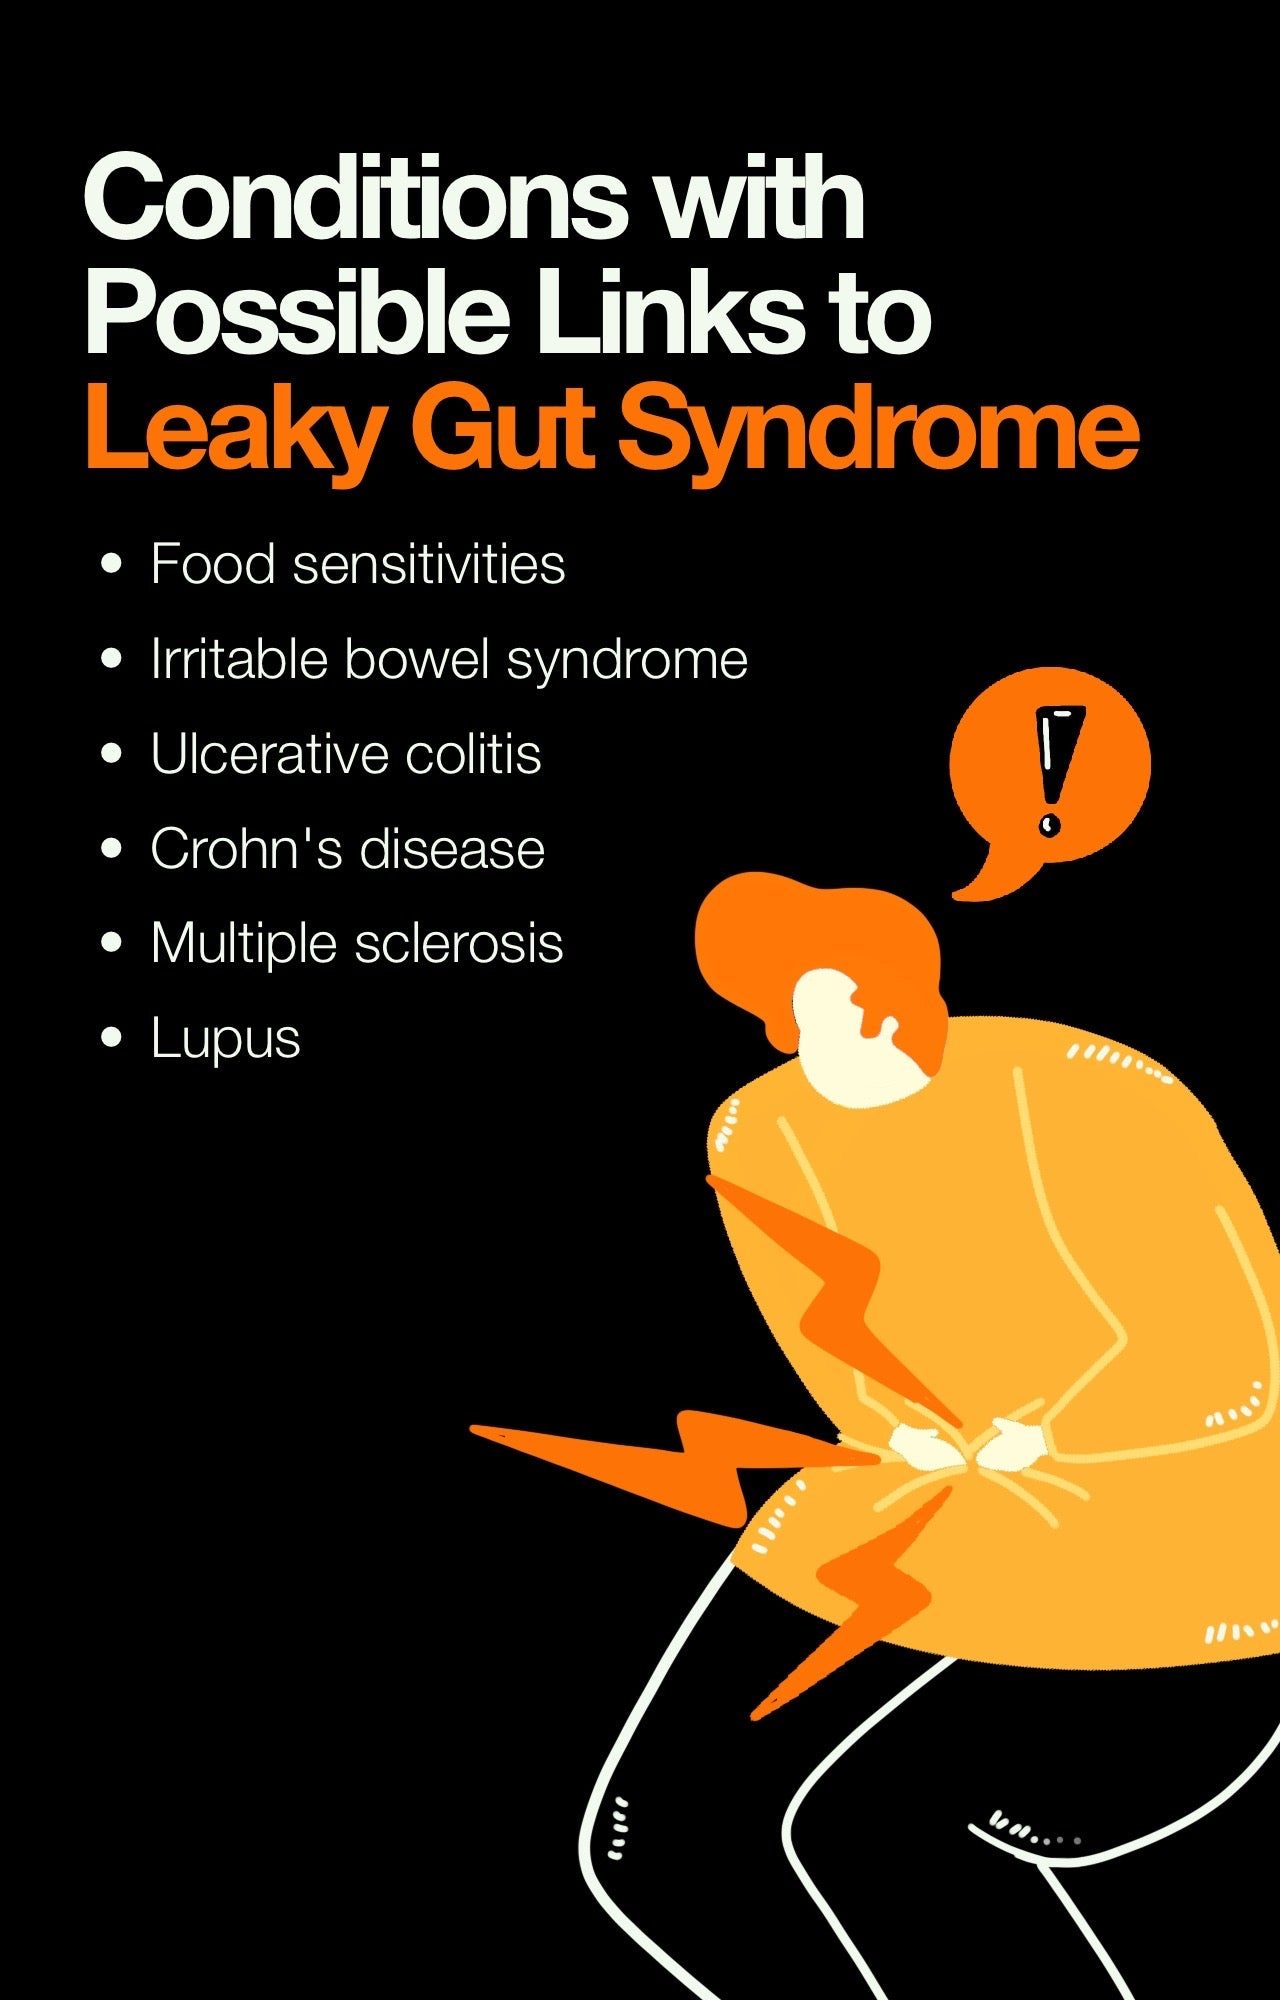 Conditions with Possible Links to Leaky Gut Syndrome